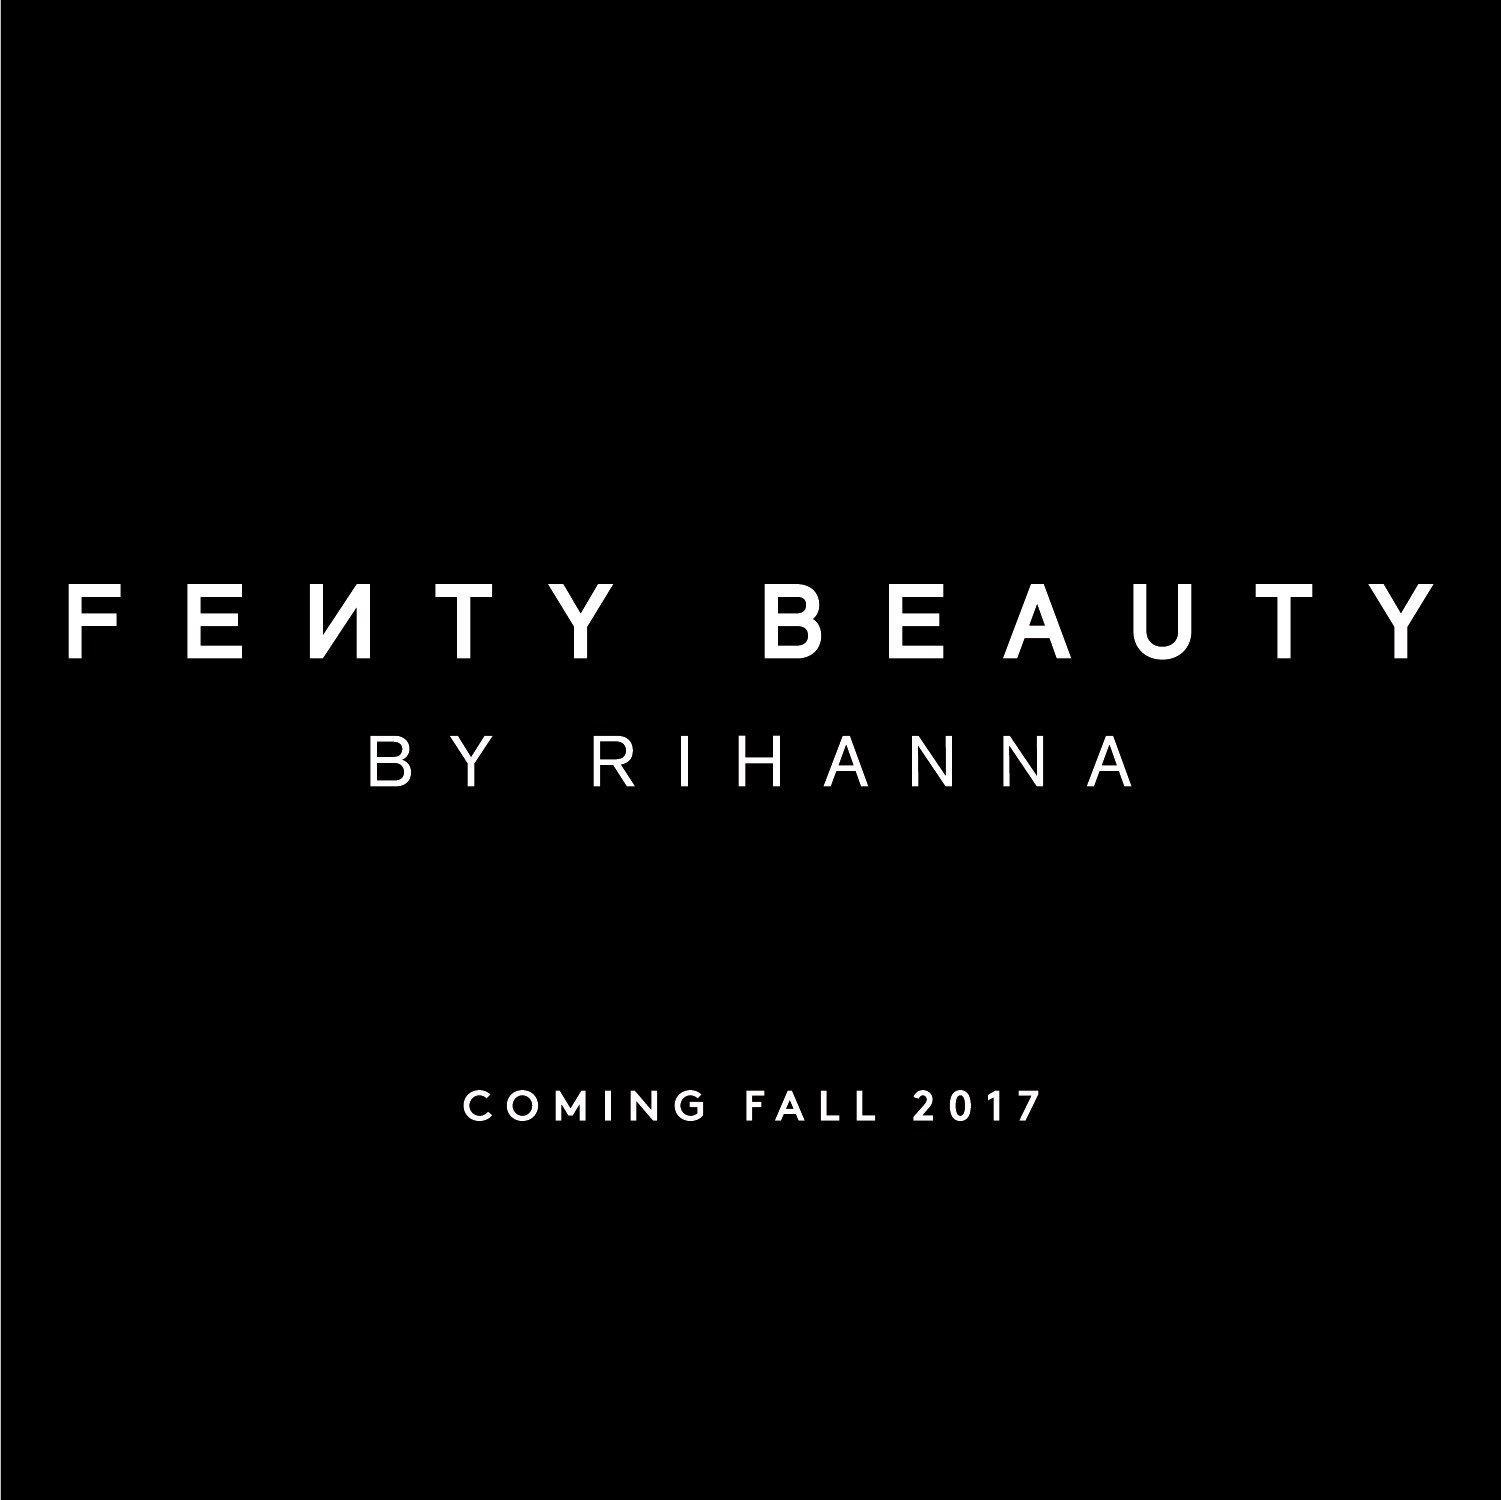 You ready? @fentybeauty   new generation of beauty...  coming this FALL! https://t.co/6wp8vdMHEh